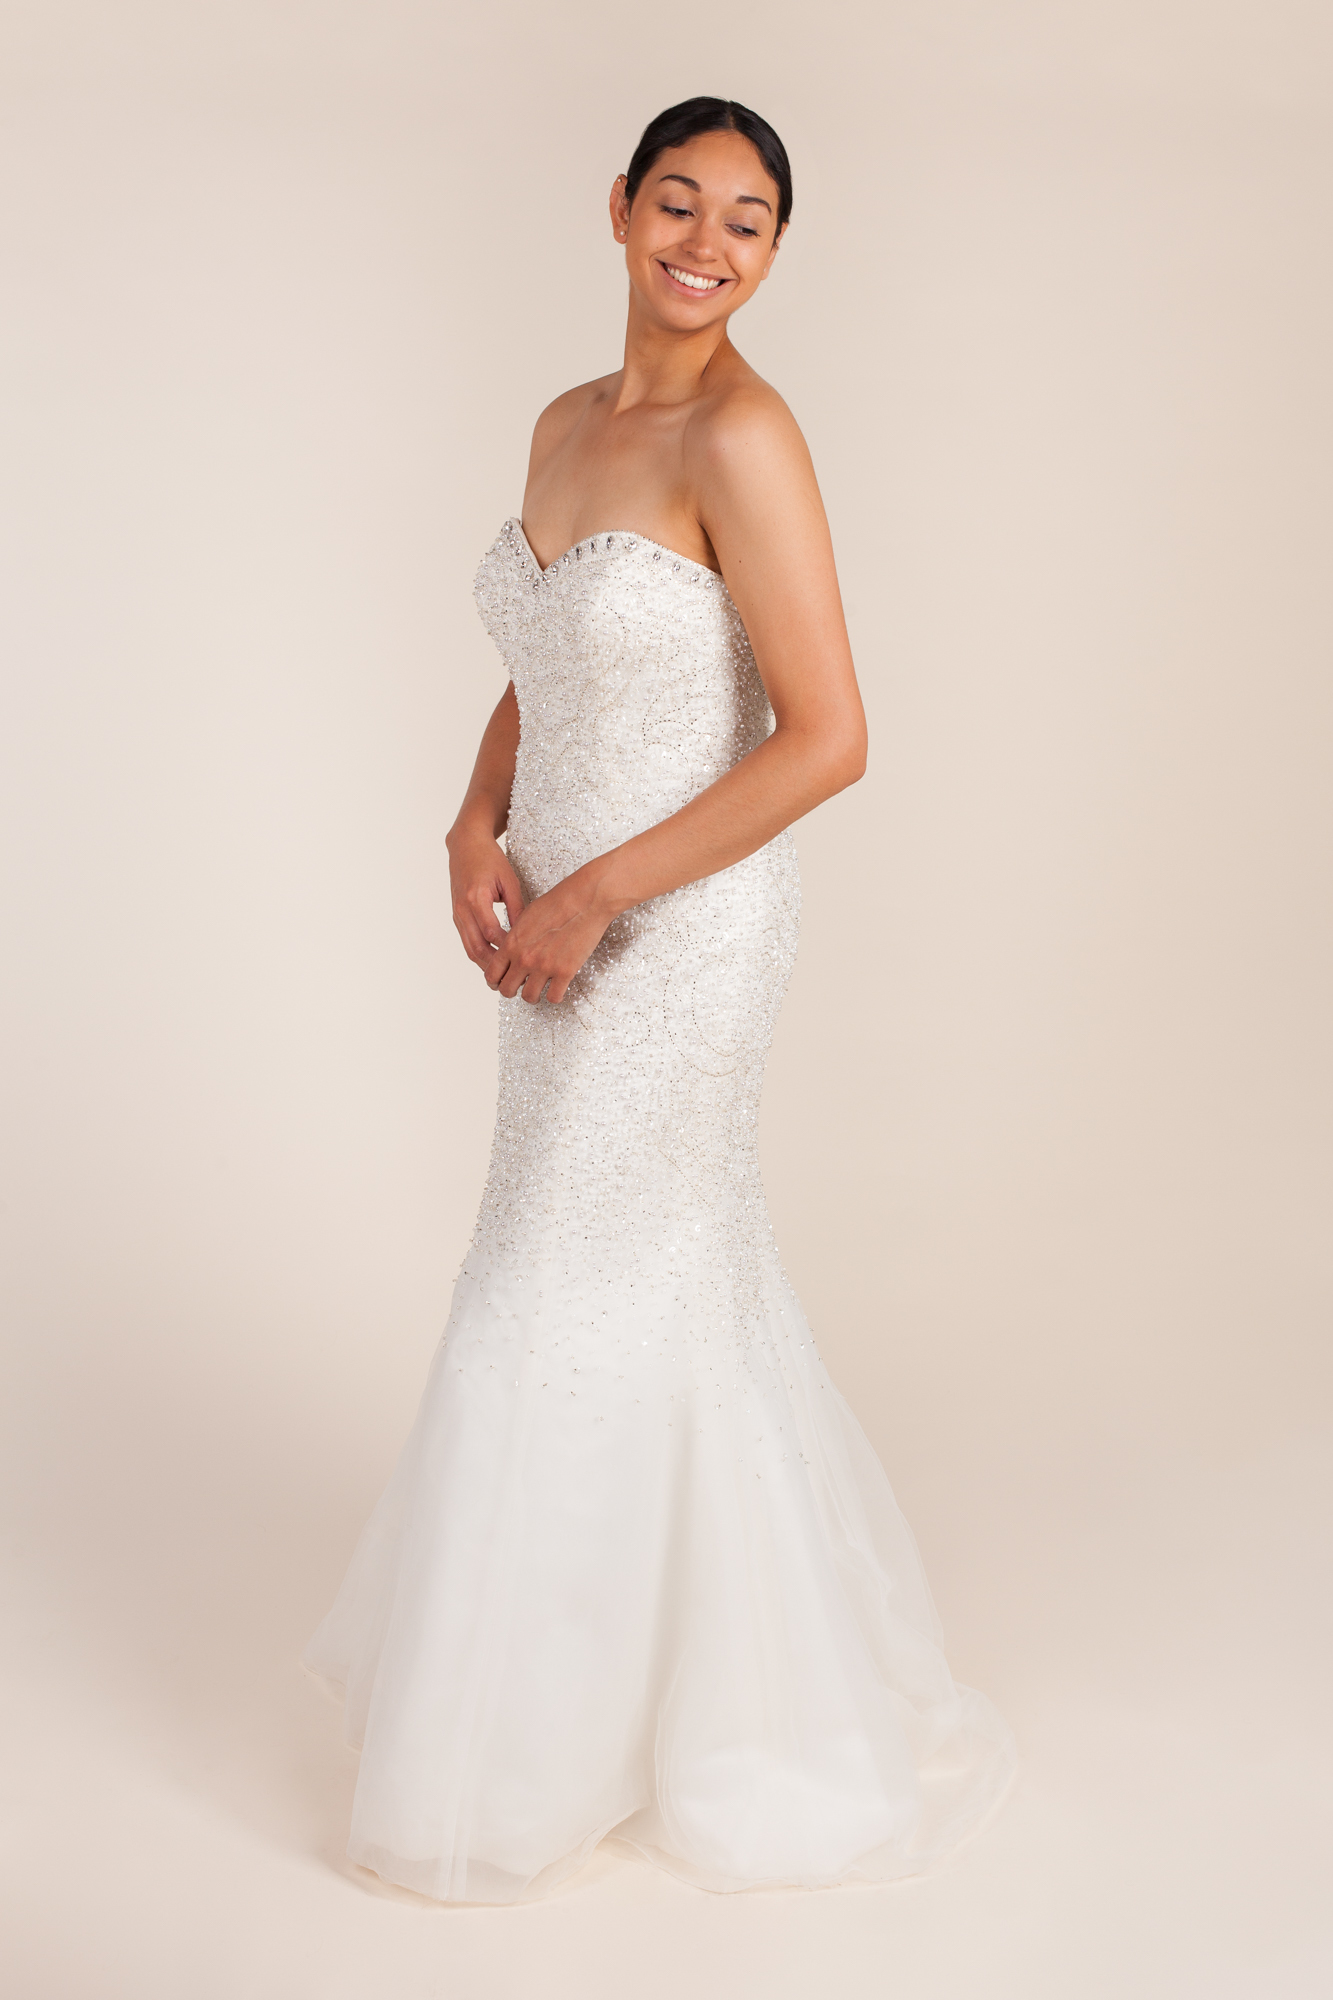 David bridal - SWG688 size 10 - $1000 - (31% OFF)